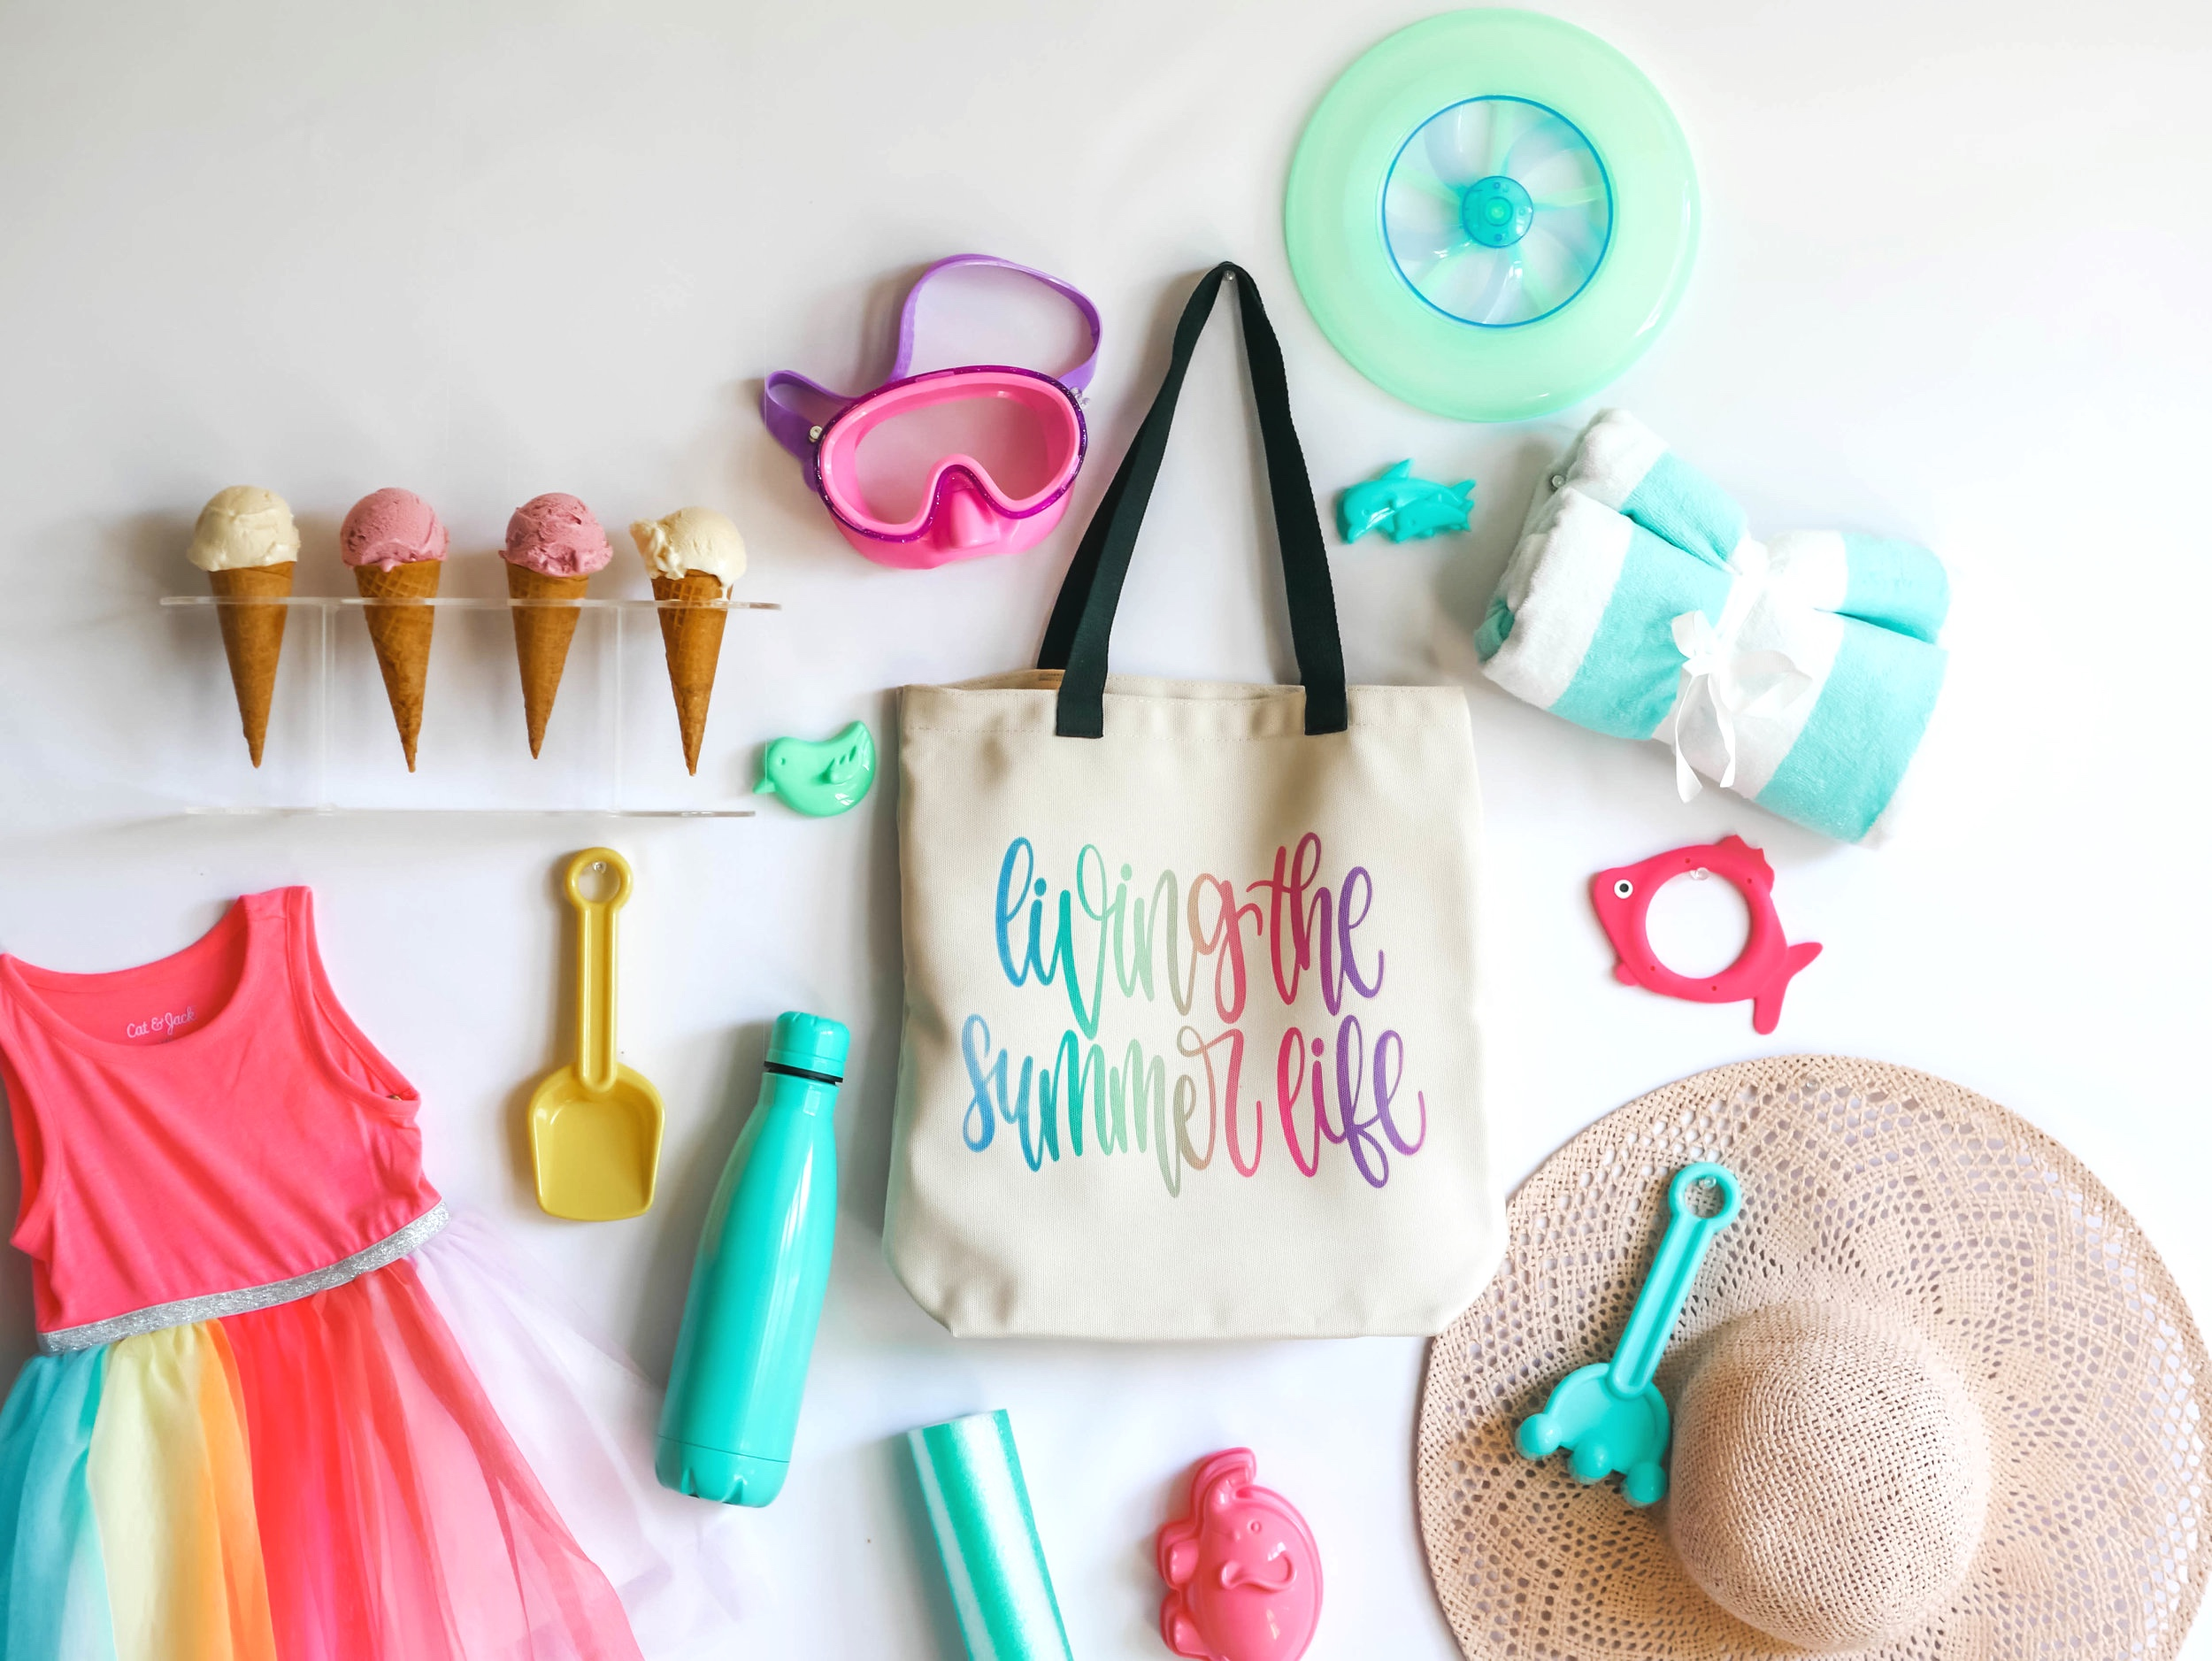 DIY Tote Bag idea from Mint Event Design, How to use Cricut's Infusible Ink available at Michaels : Ideas from Mint Event Design, Cricut DIY, Cricut Infusible Ink DIY and How to, step by step infusible Ink DIY